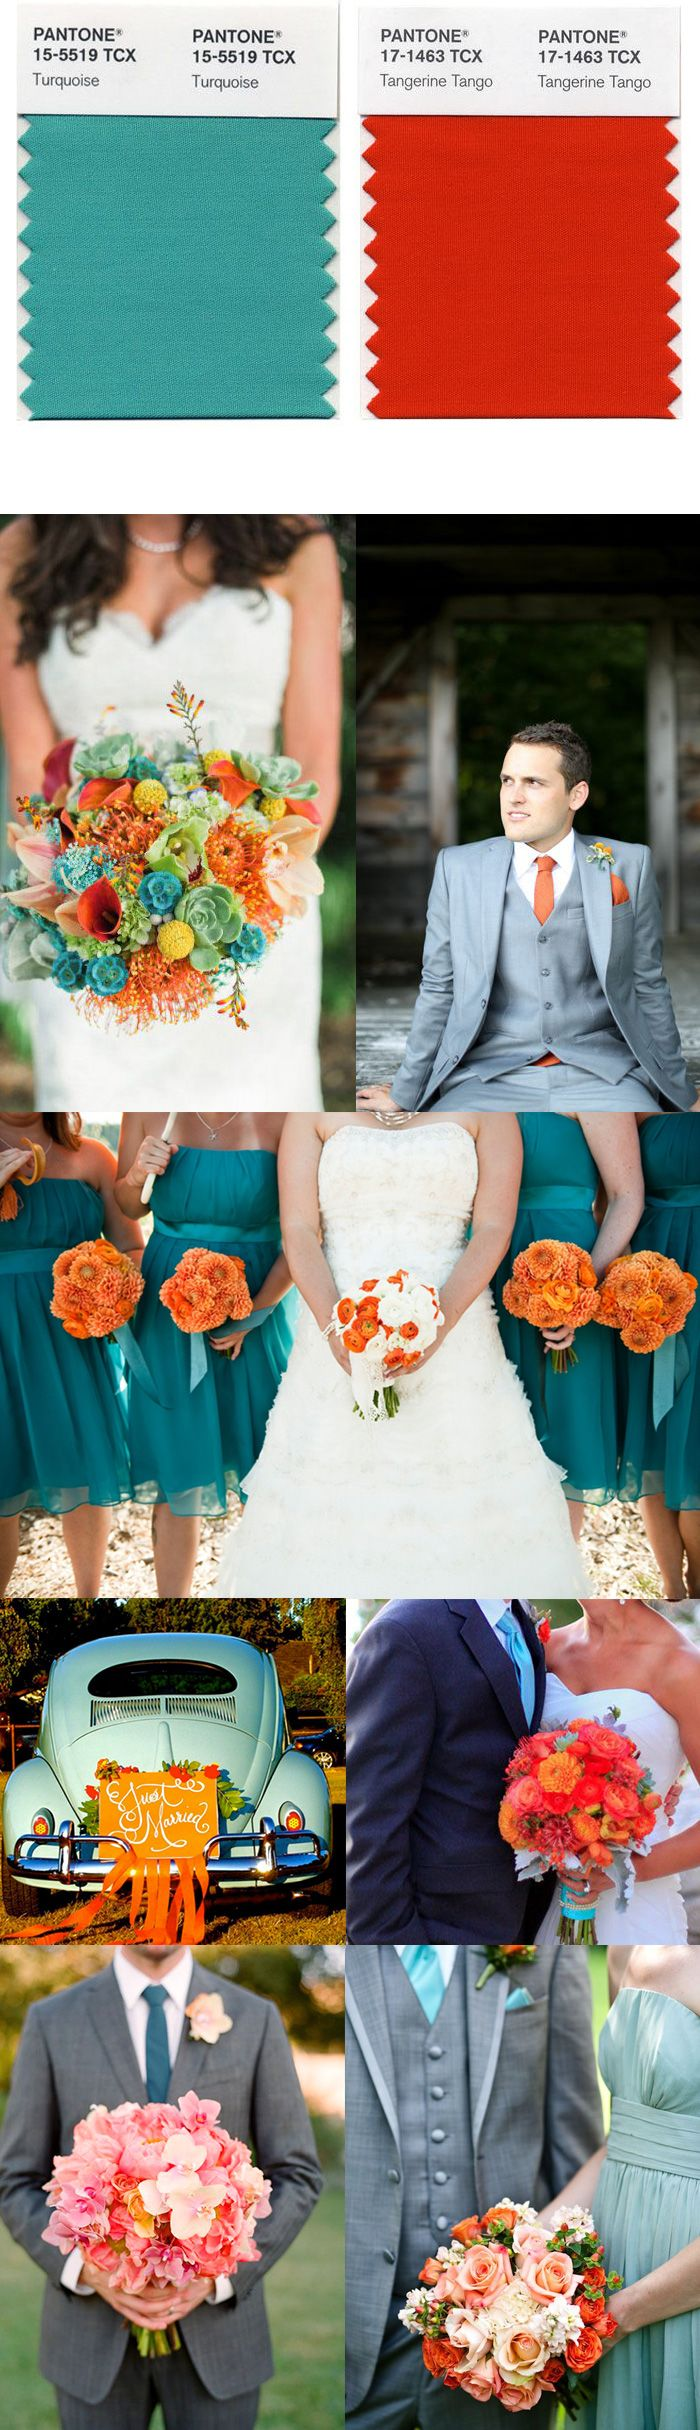 Today, we are featuring the bold and beautiful color combination of tangerine and turquoise. These two bright and brazen hues work wonders together and create a mood of elation, merriment and boundless love. Check out the spectacular aesthetic of these two colors together